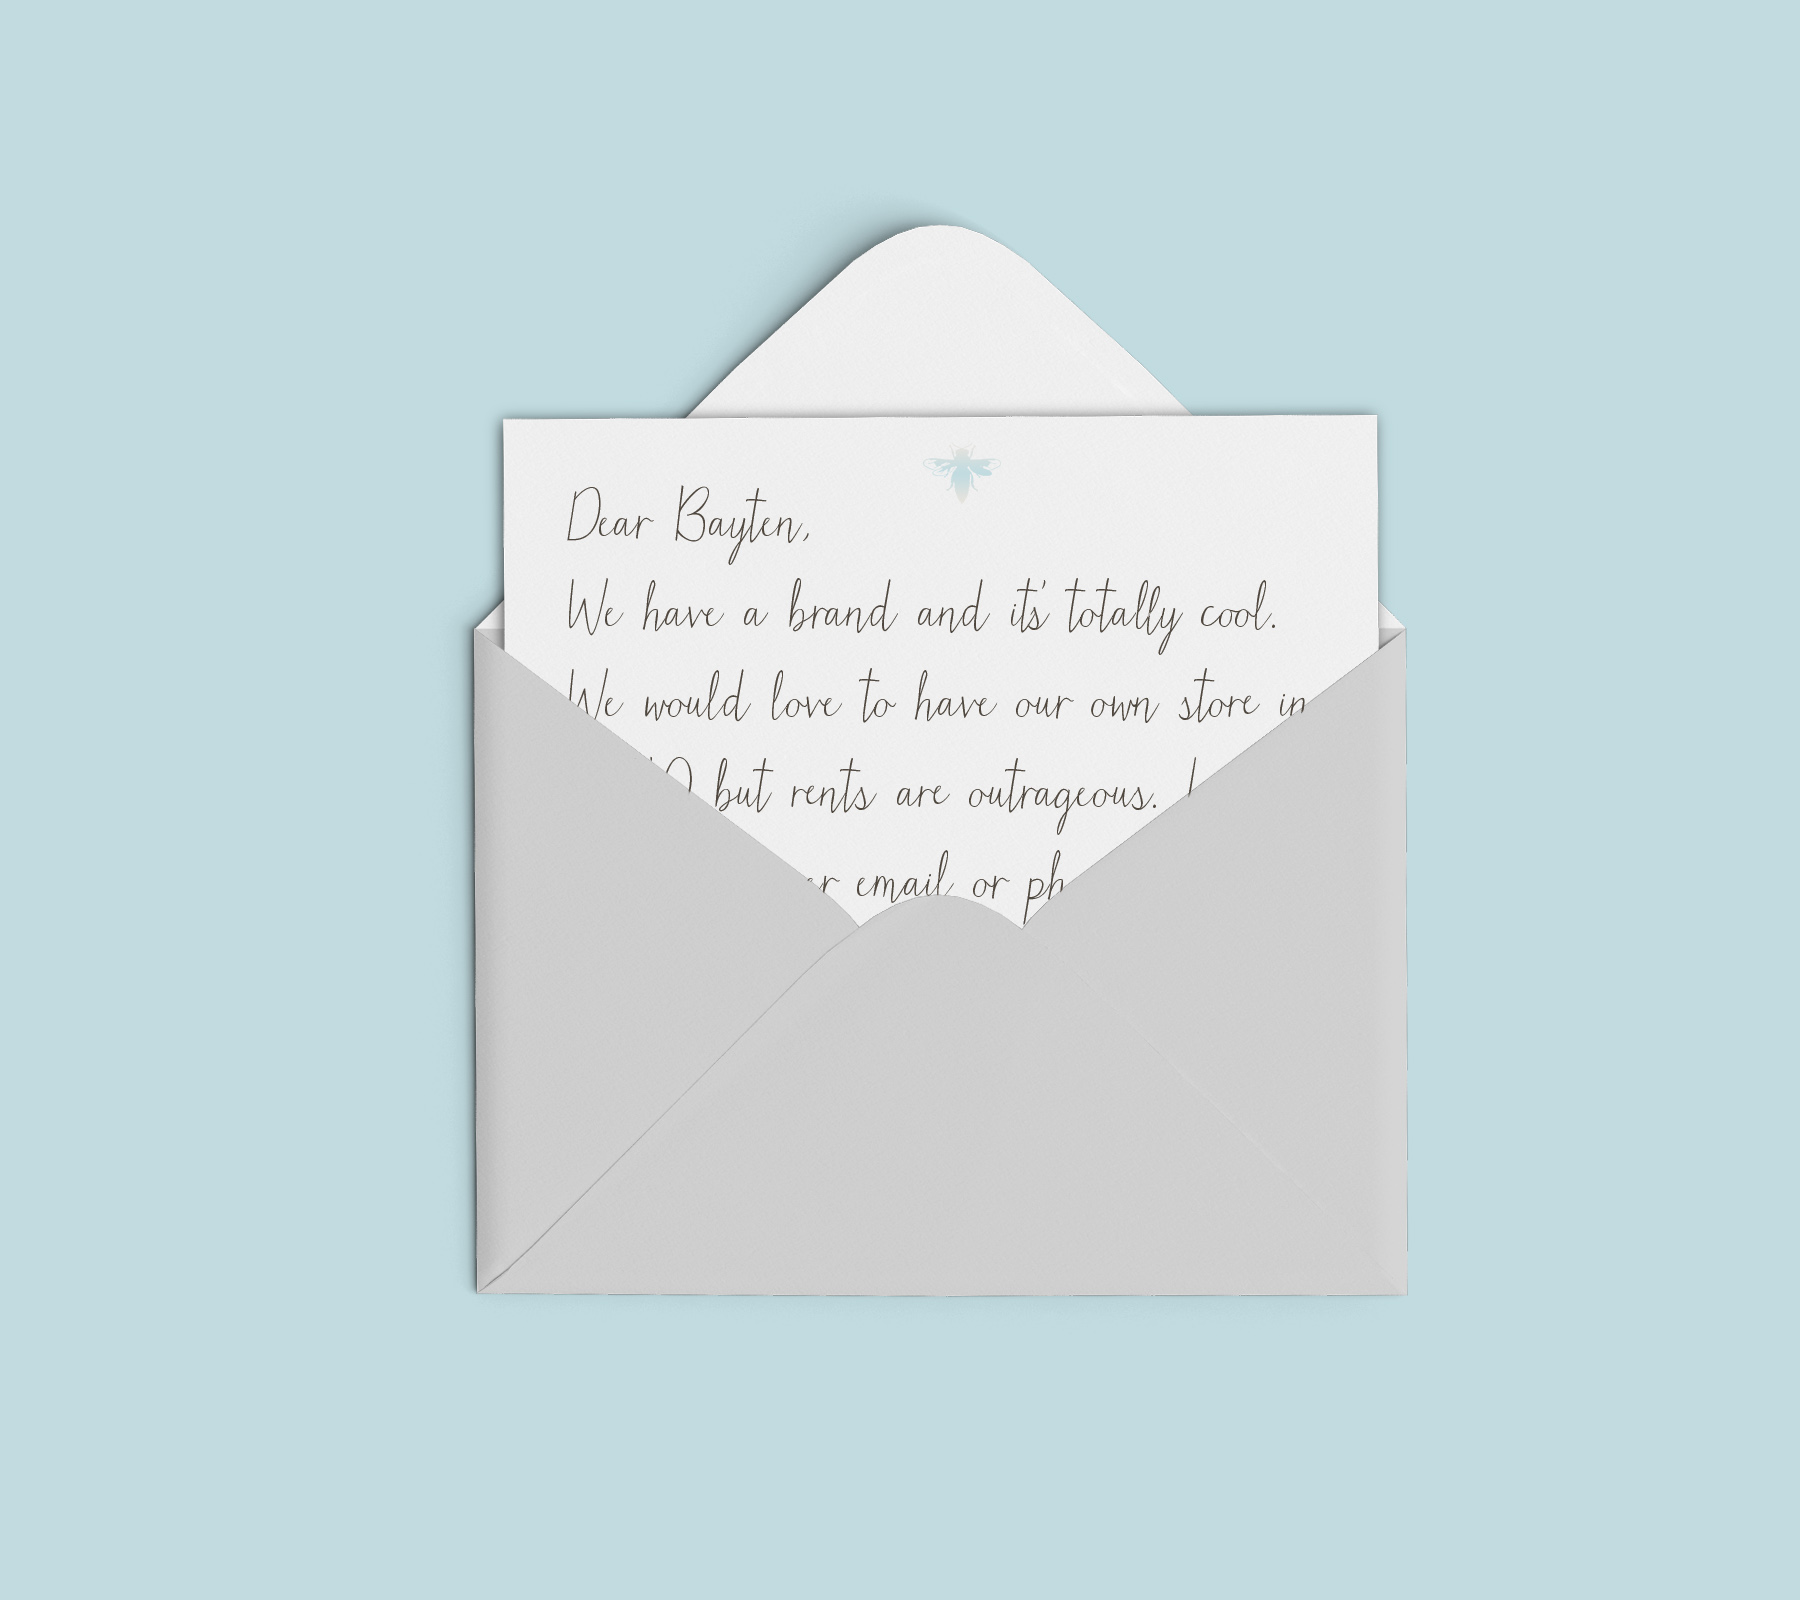 (Email is best, but isn't stationery just so charming? Seriously, just email us. hello@bayten.co)